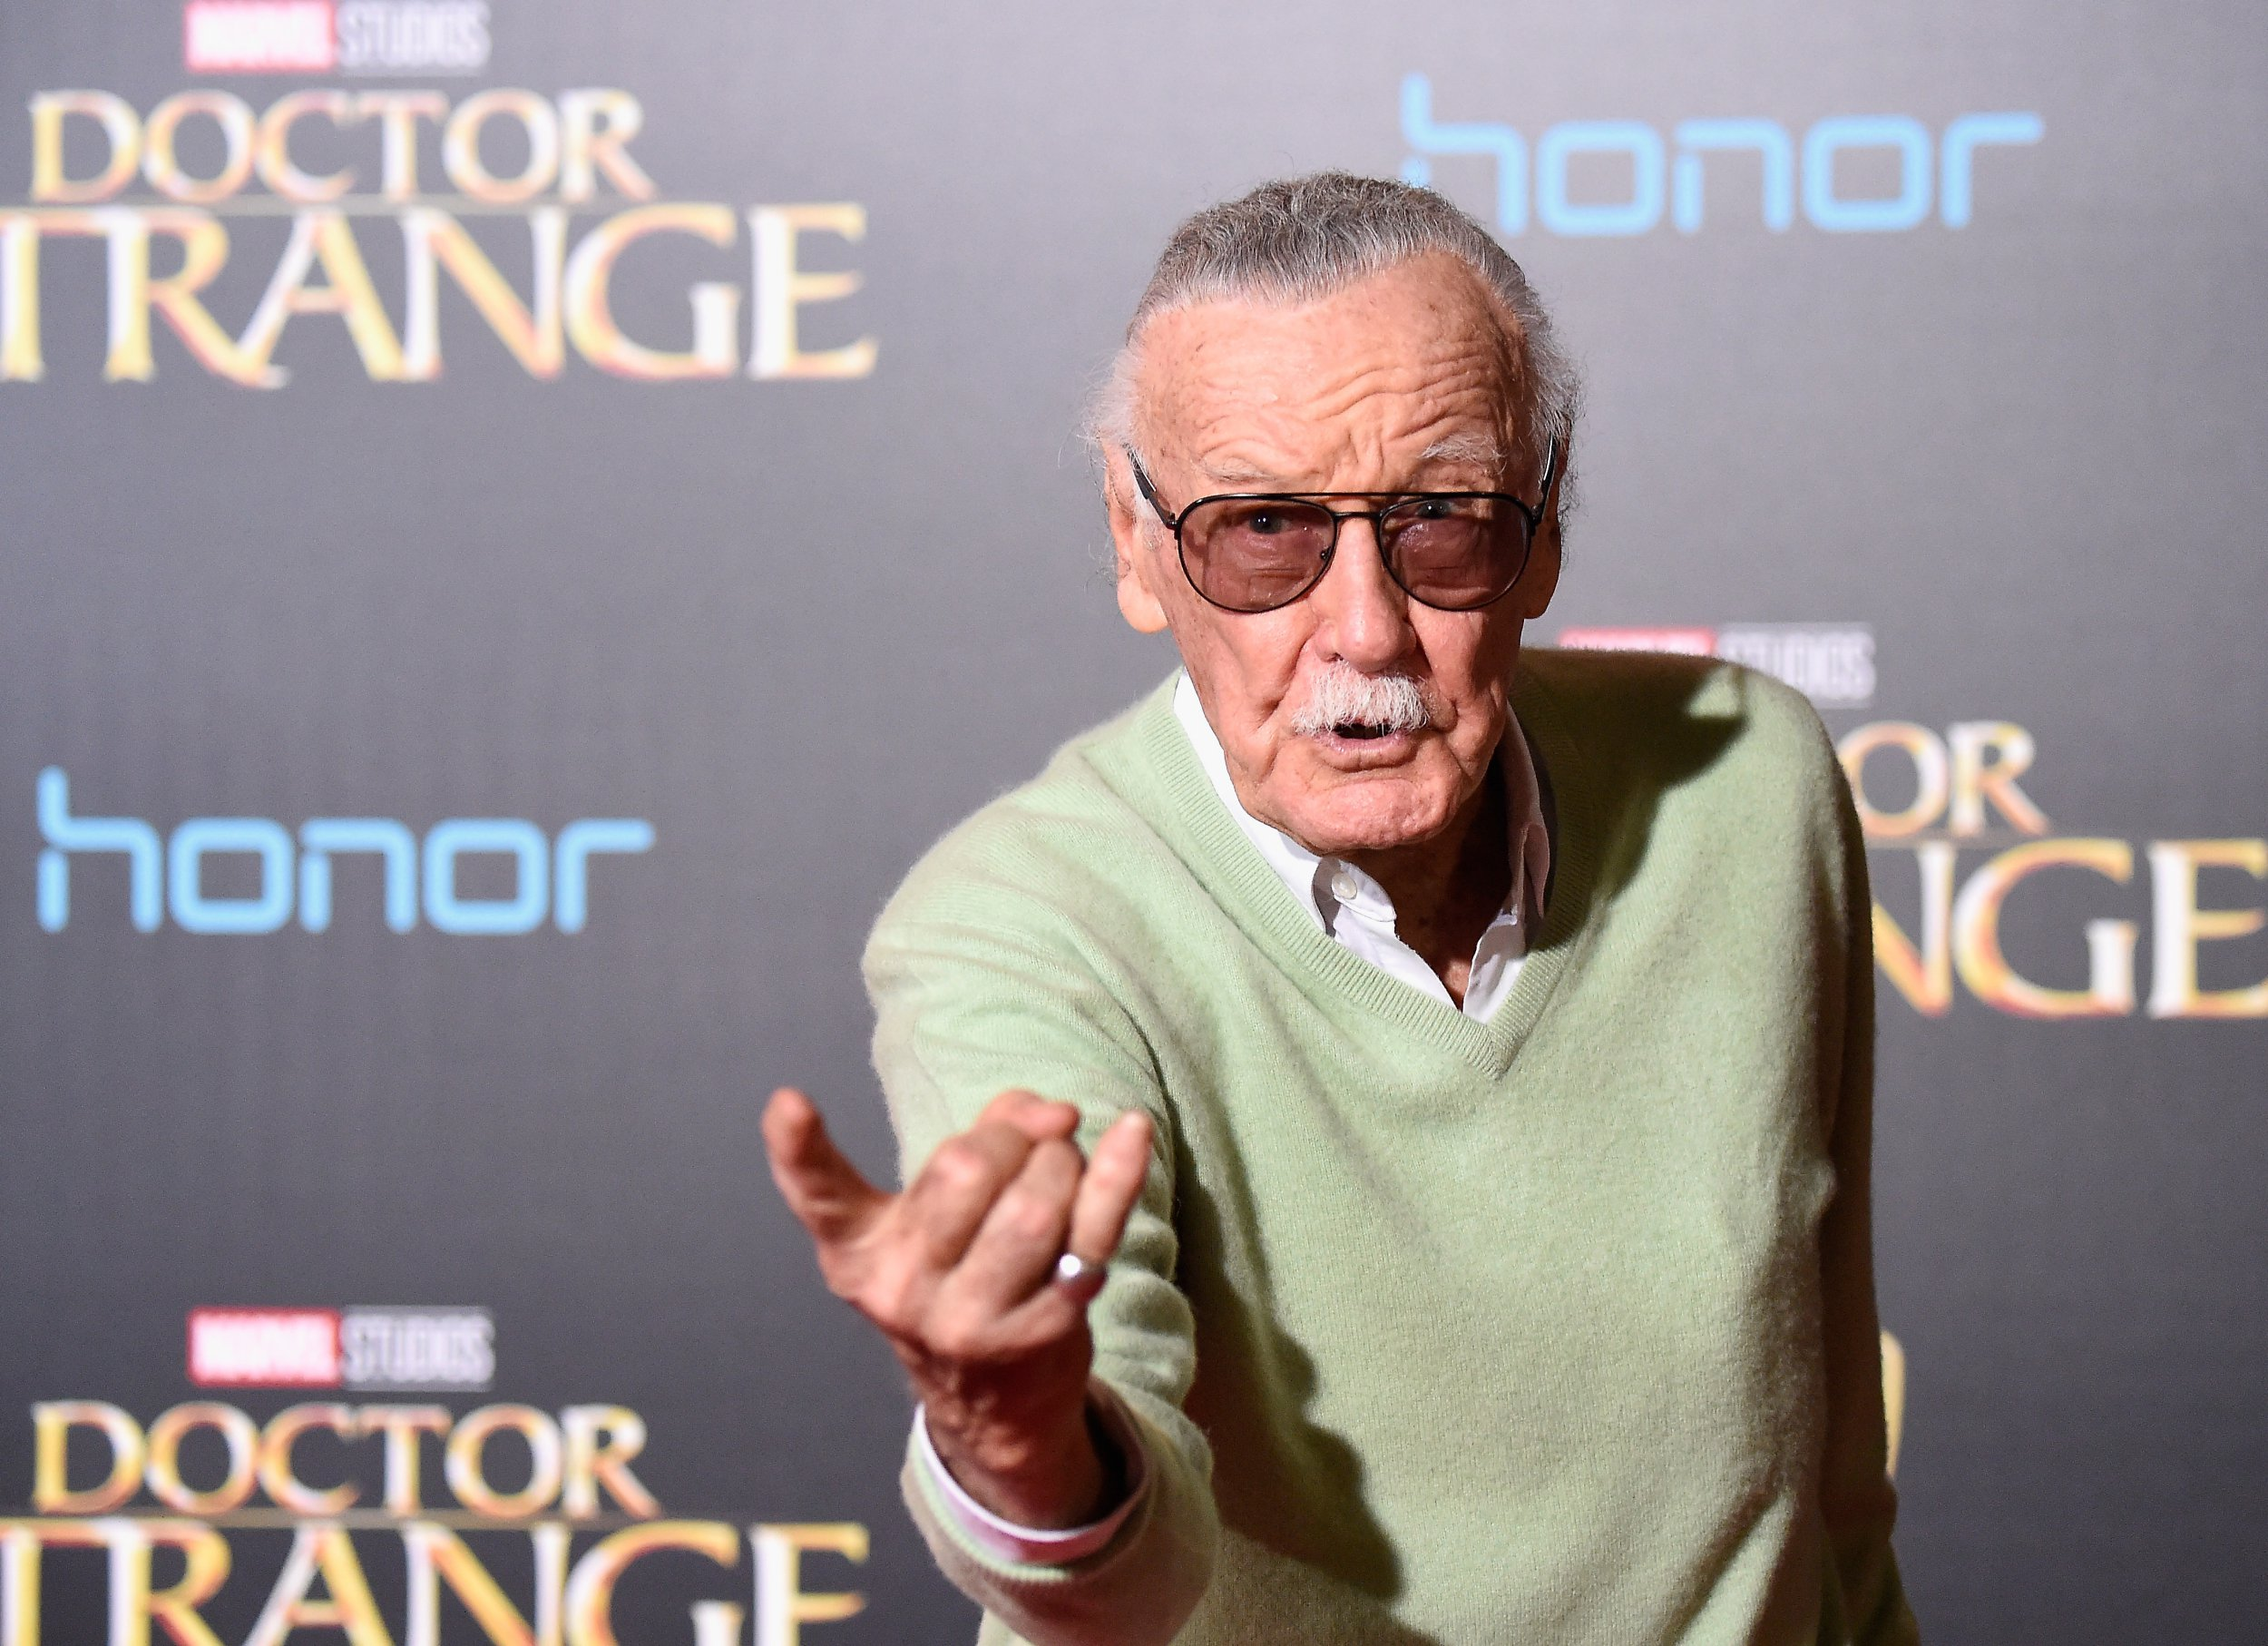 Stan Lee attends a Premiere of Disney and Marvel Studios' Doctor Strange